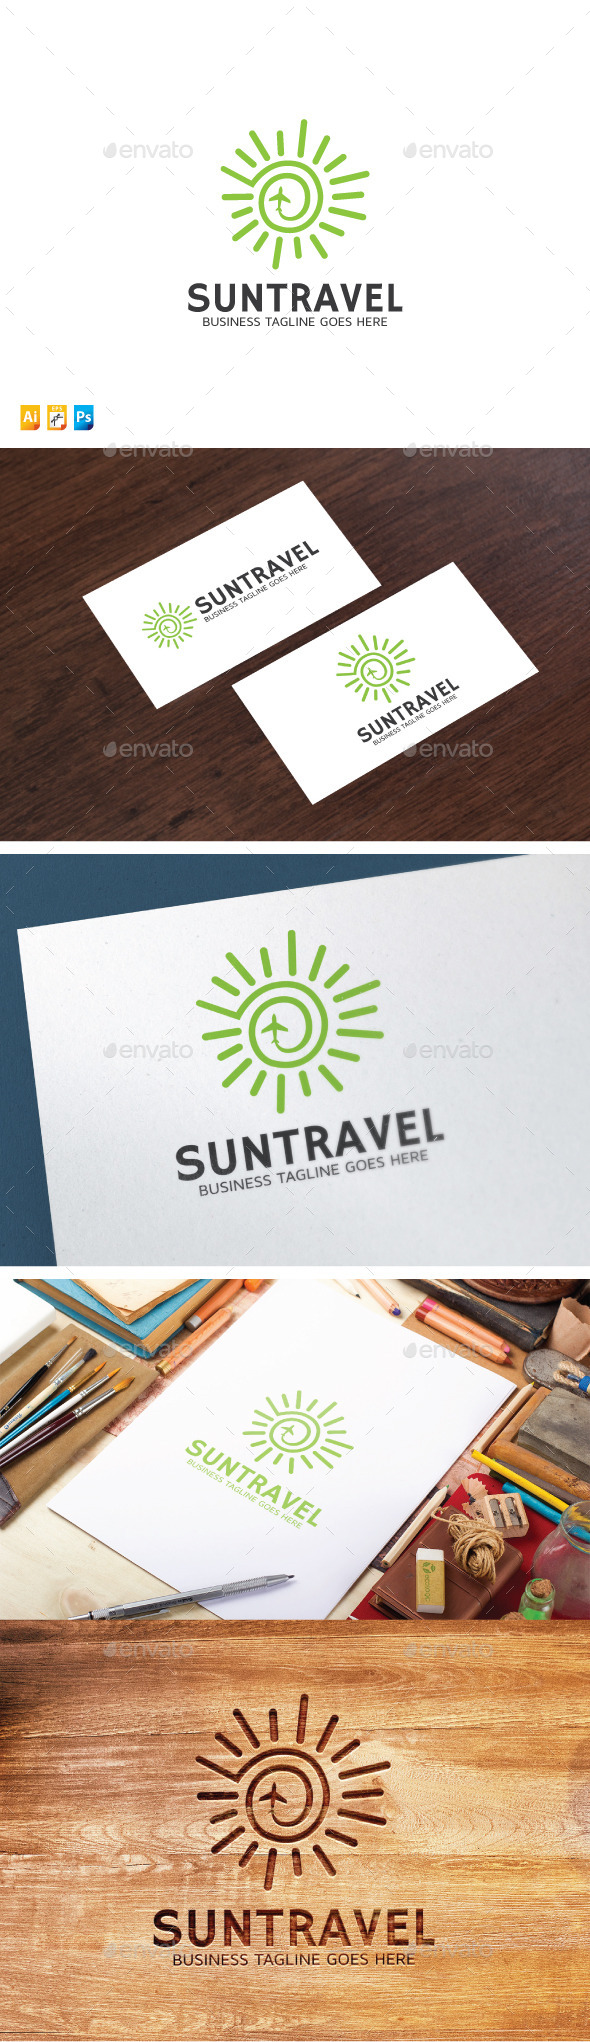 Sun Travel - Objects Logo Templates